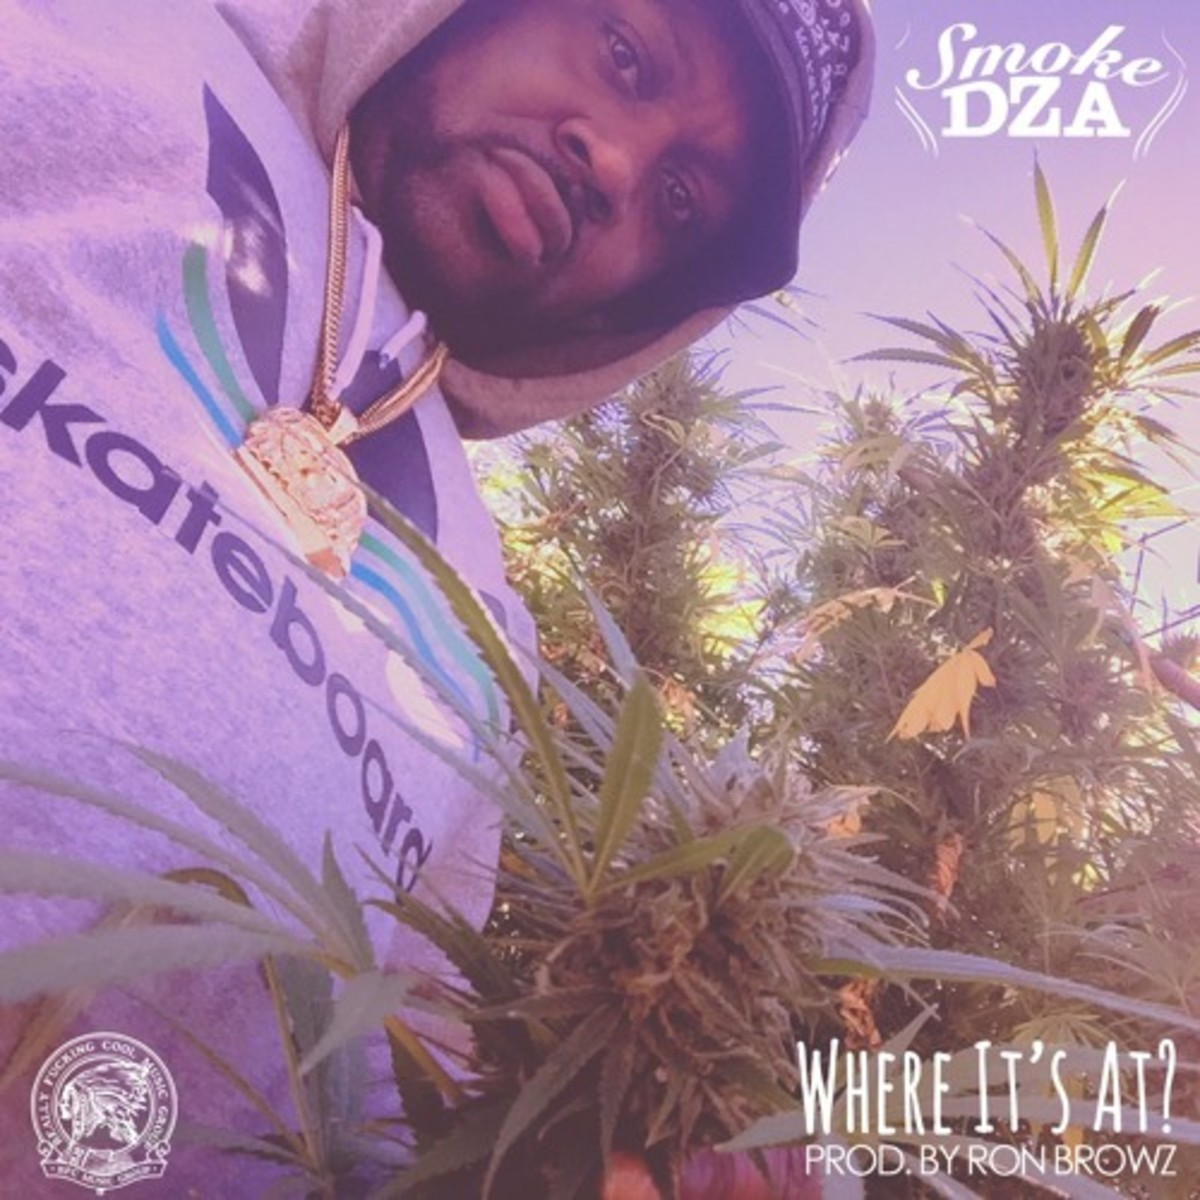 smoke-dza-where-its-at.jpg